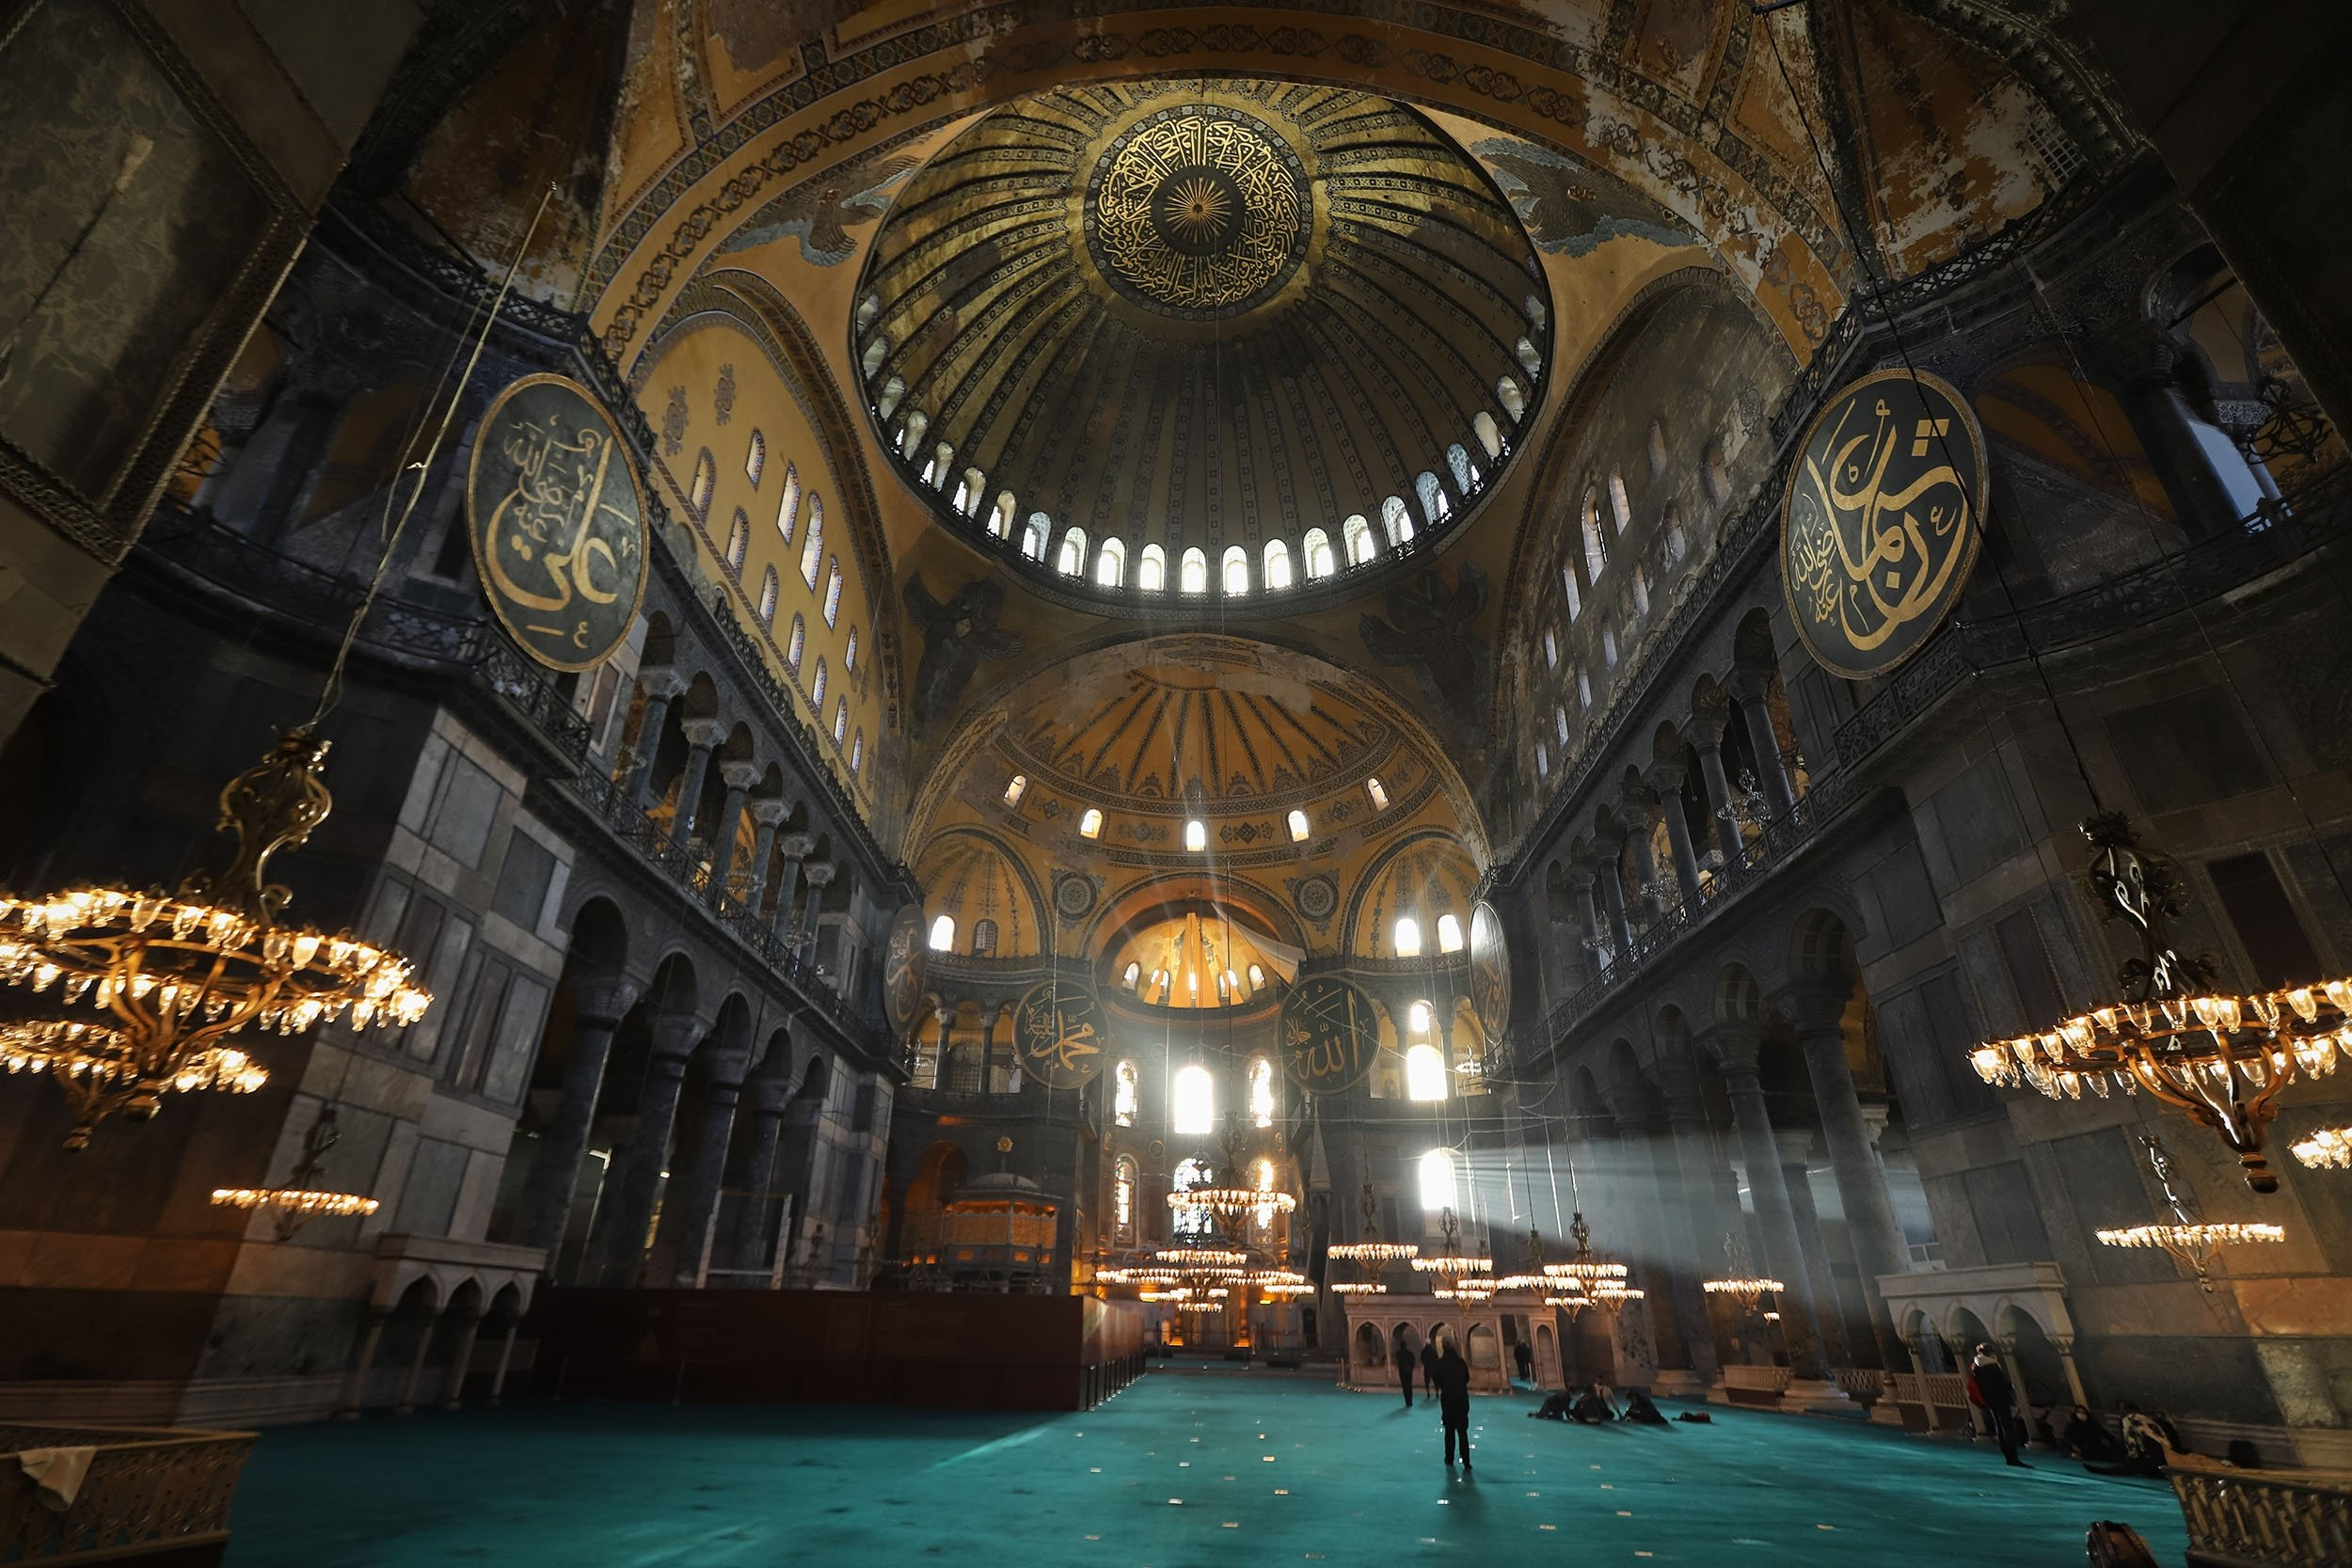 An interior view of the Hagia Sophia Grand Mosque in Sultanahmet,Istanbul, Turkey. (Shutterstock Photo)